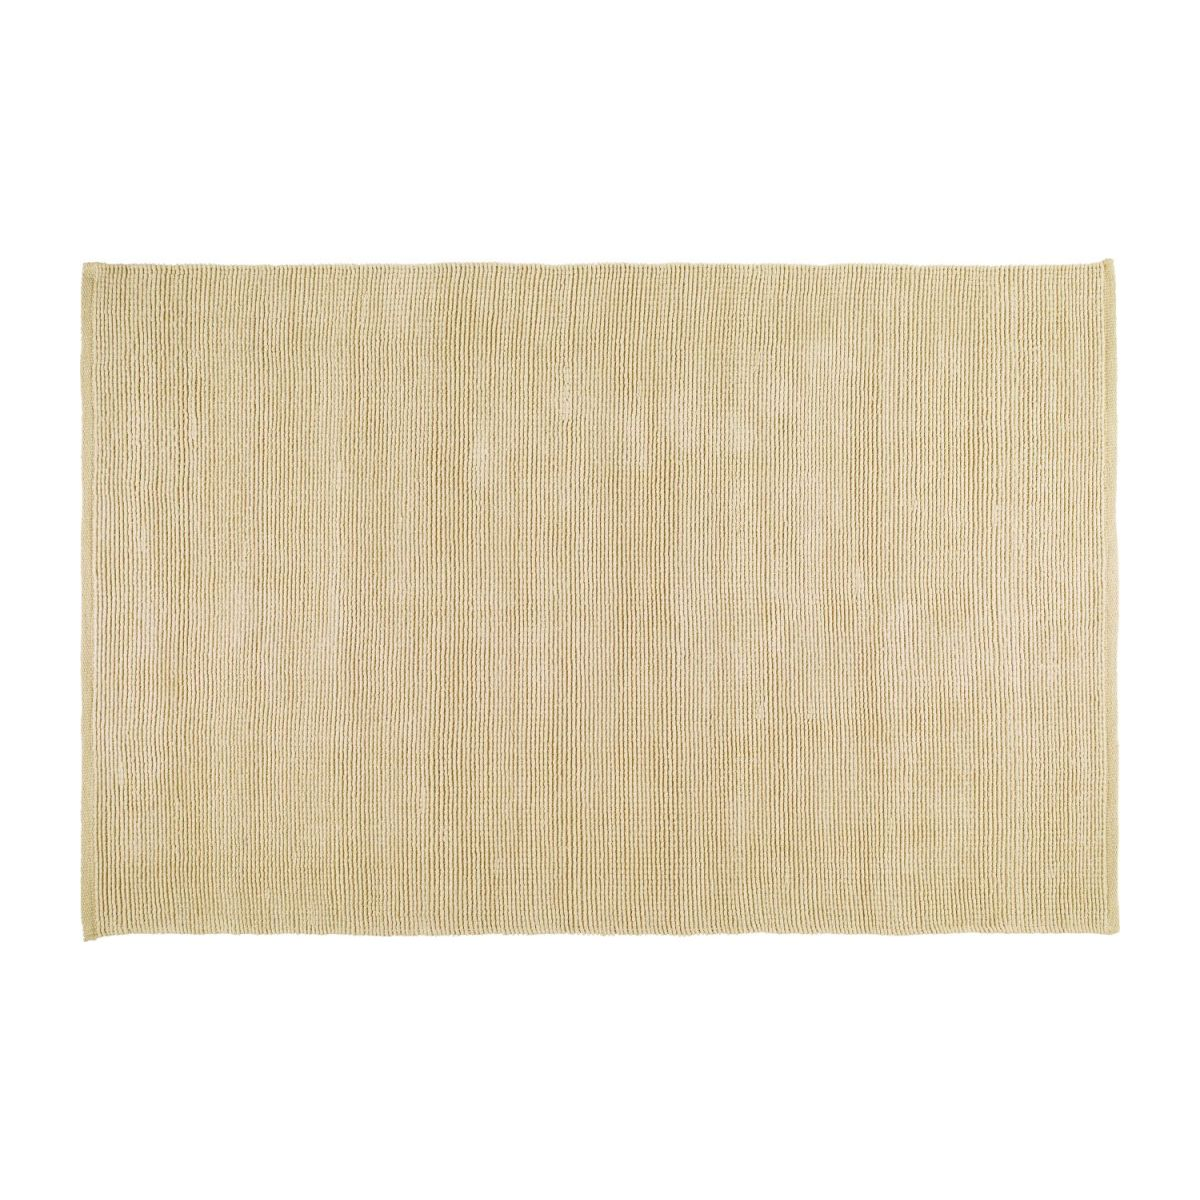 Large textured cotton rug n°2